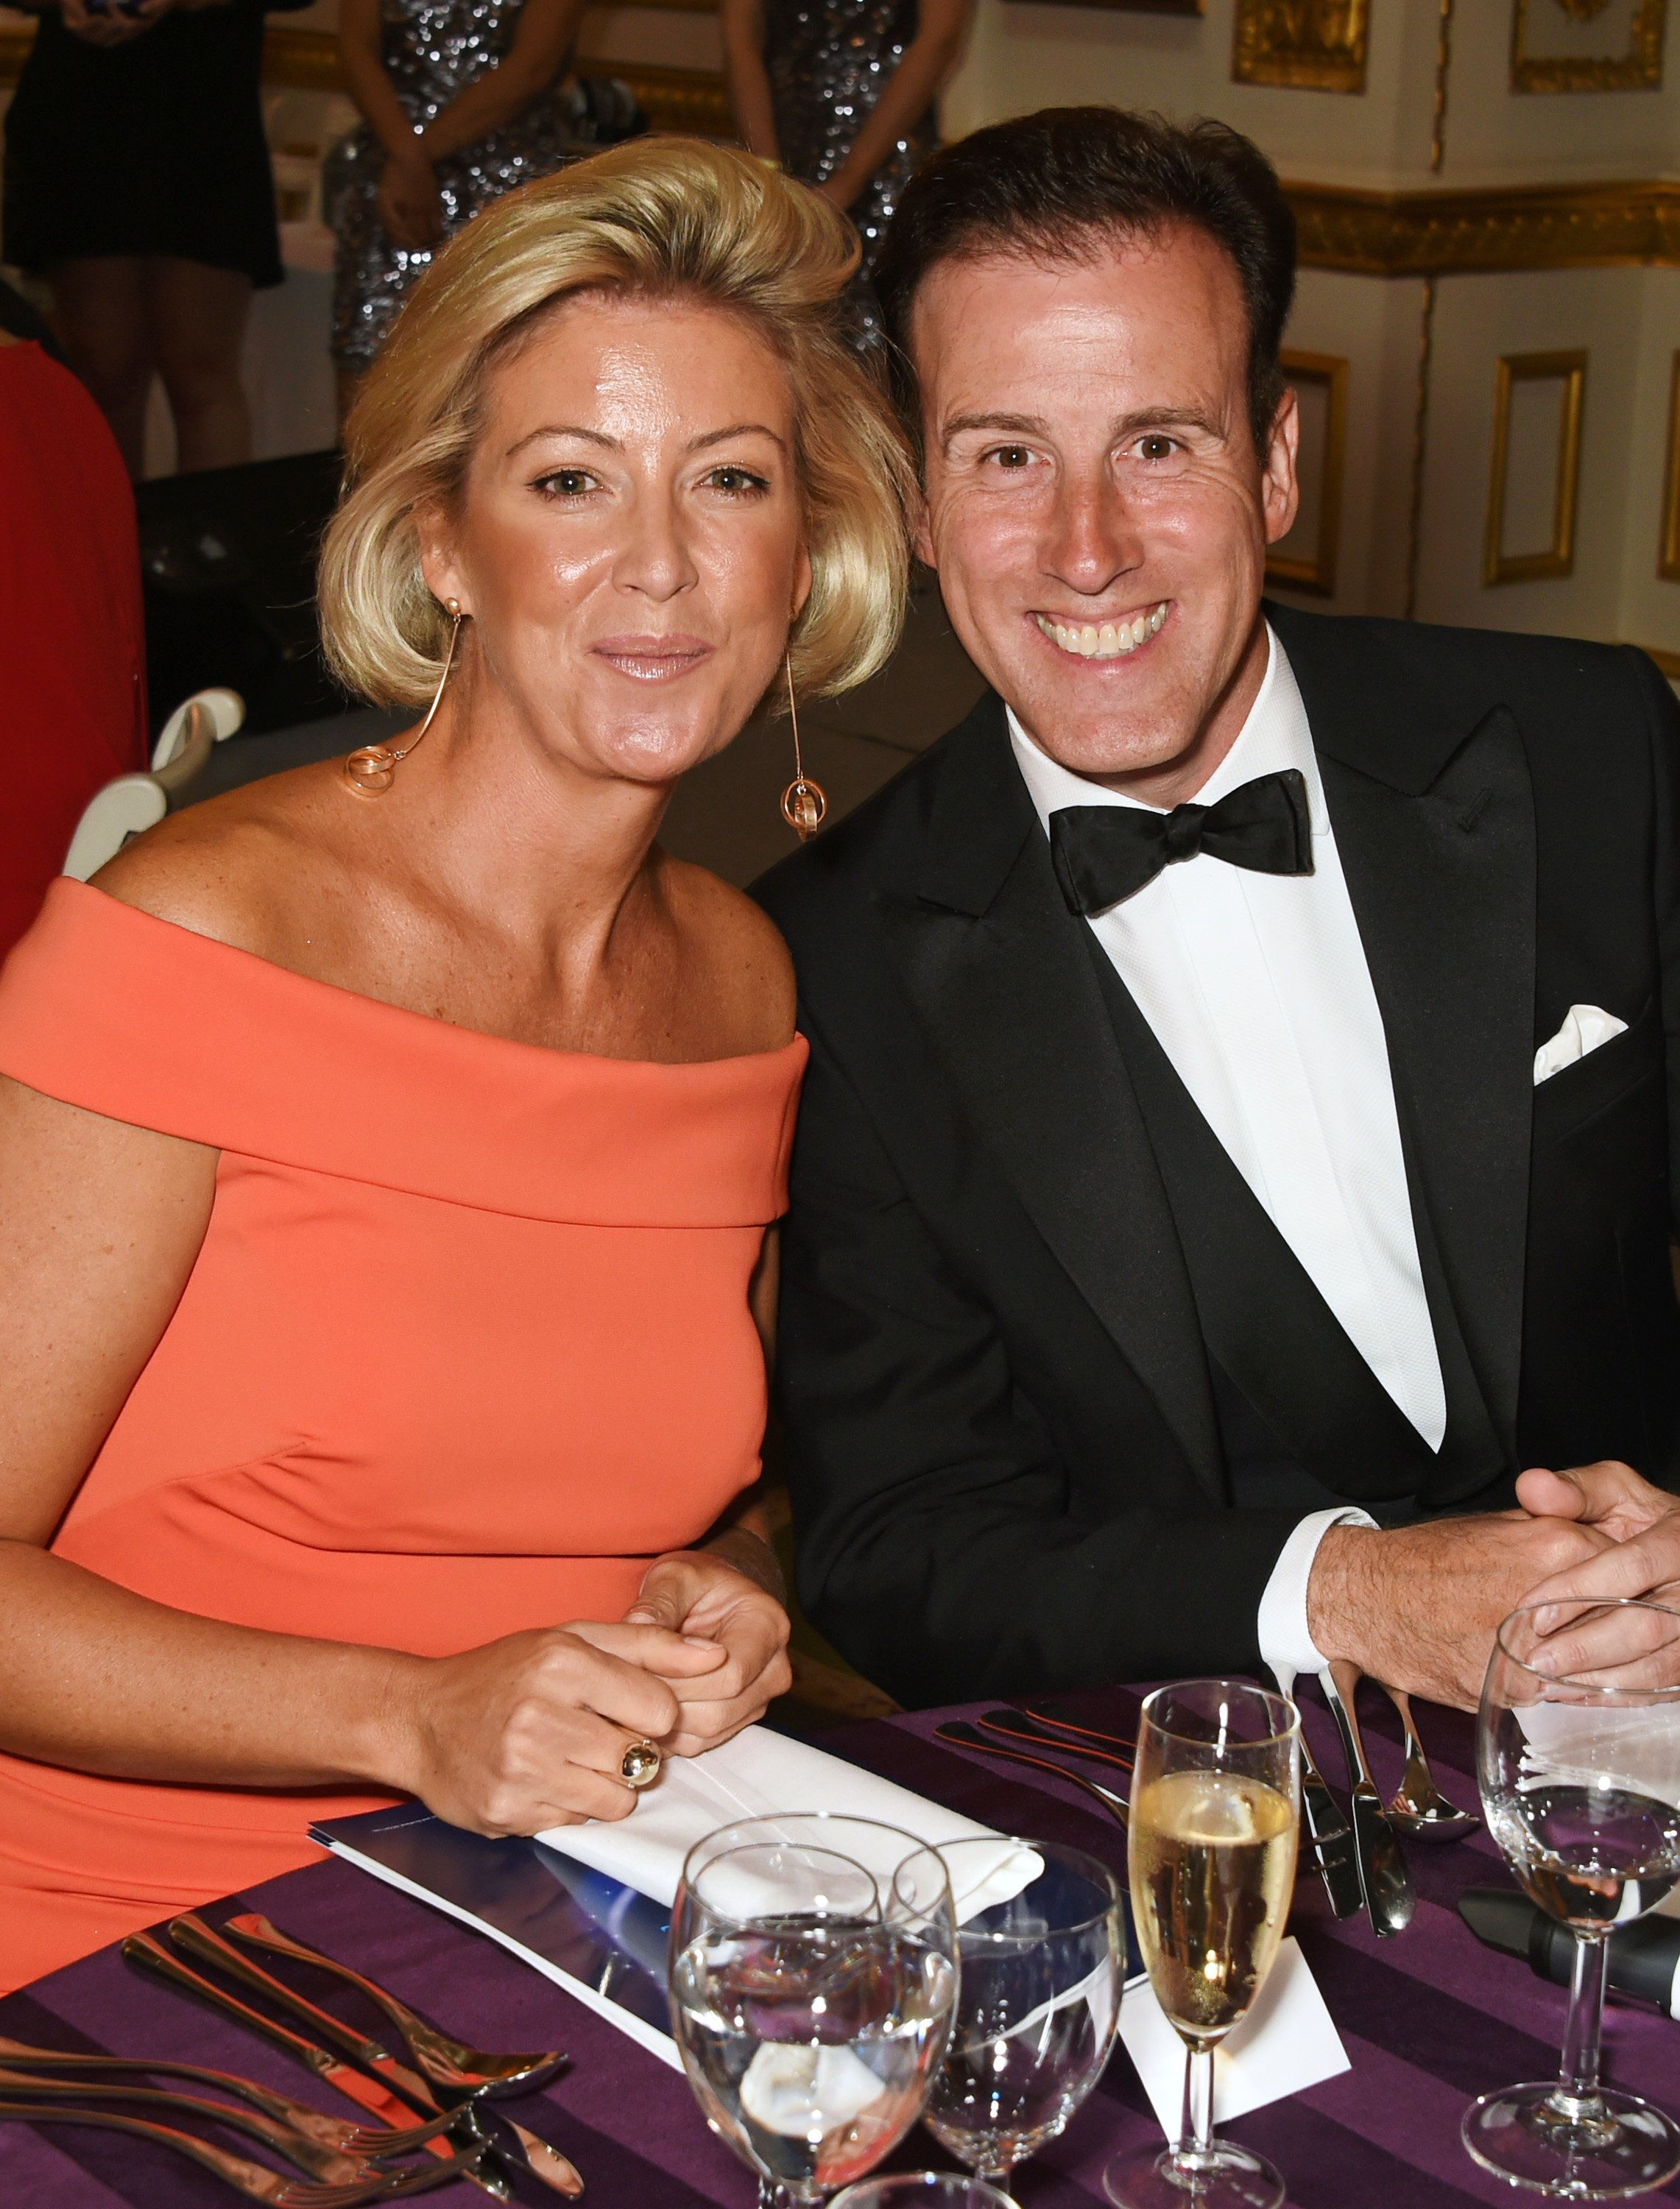 Anton Du Beke On Becoming A Dad At 50: 'Twins Are Going To Be A